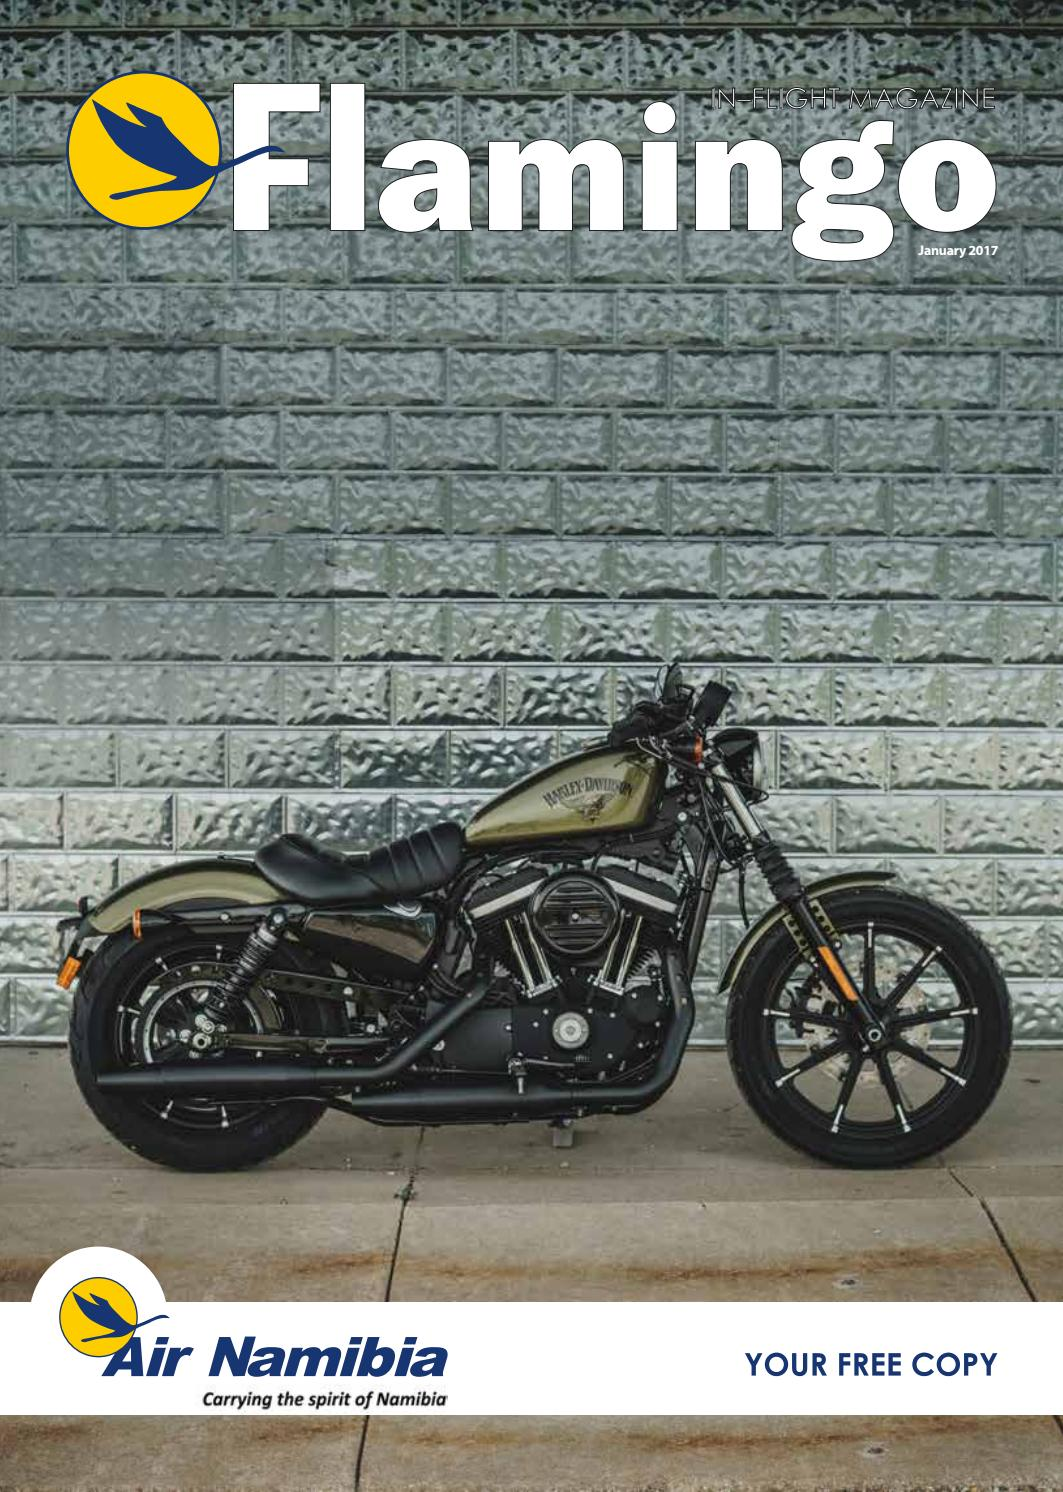 Flamingo December 2016 January 2017 By Air Namibia Issuu Wiring Diagrams European Audi Type 44s Pictures To Pin On Pinterest